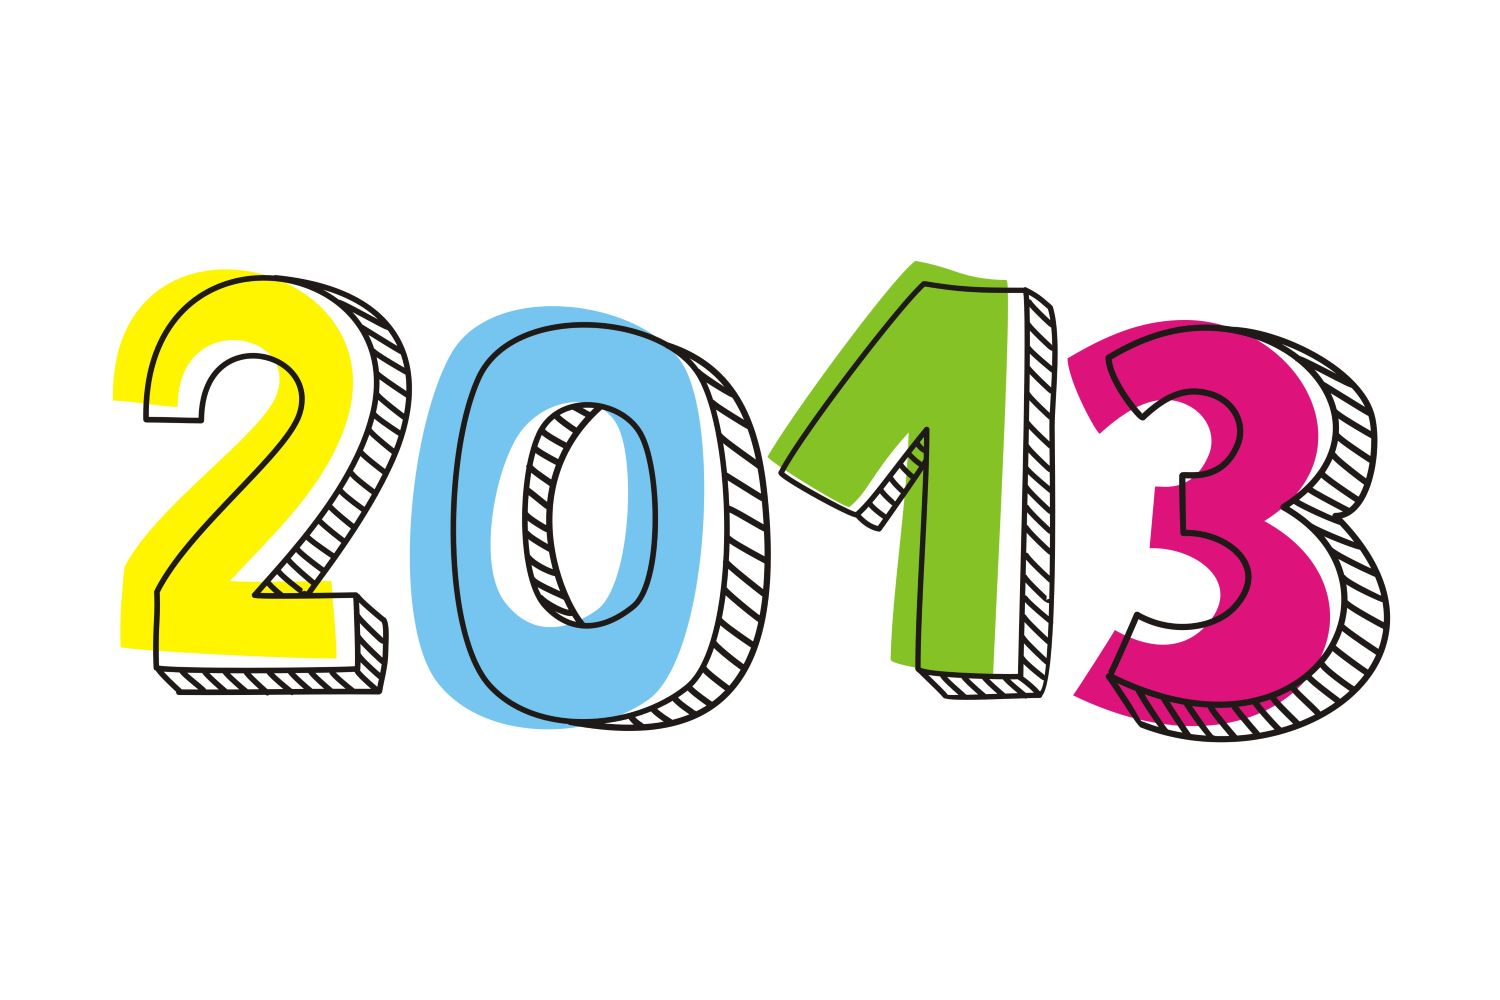 IIM's Top 13 Insights from 2013 (Part 1 of 3)